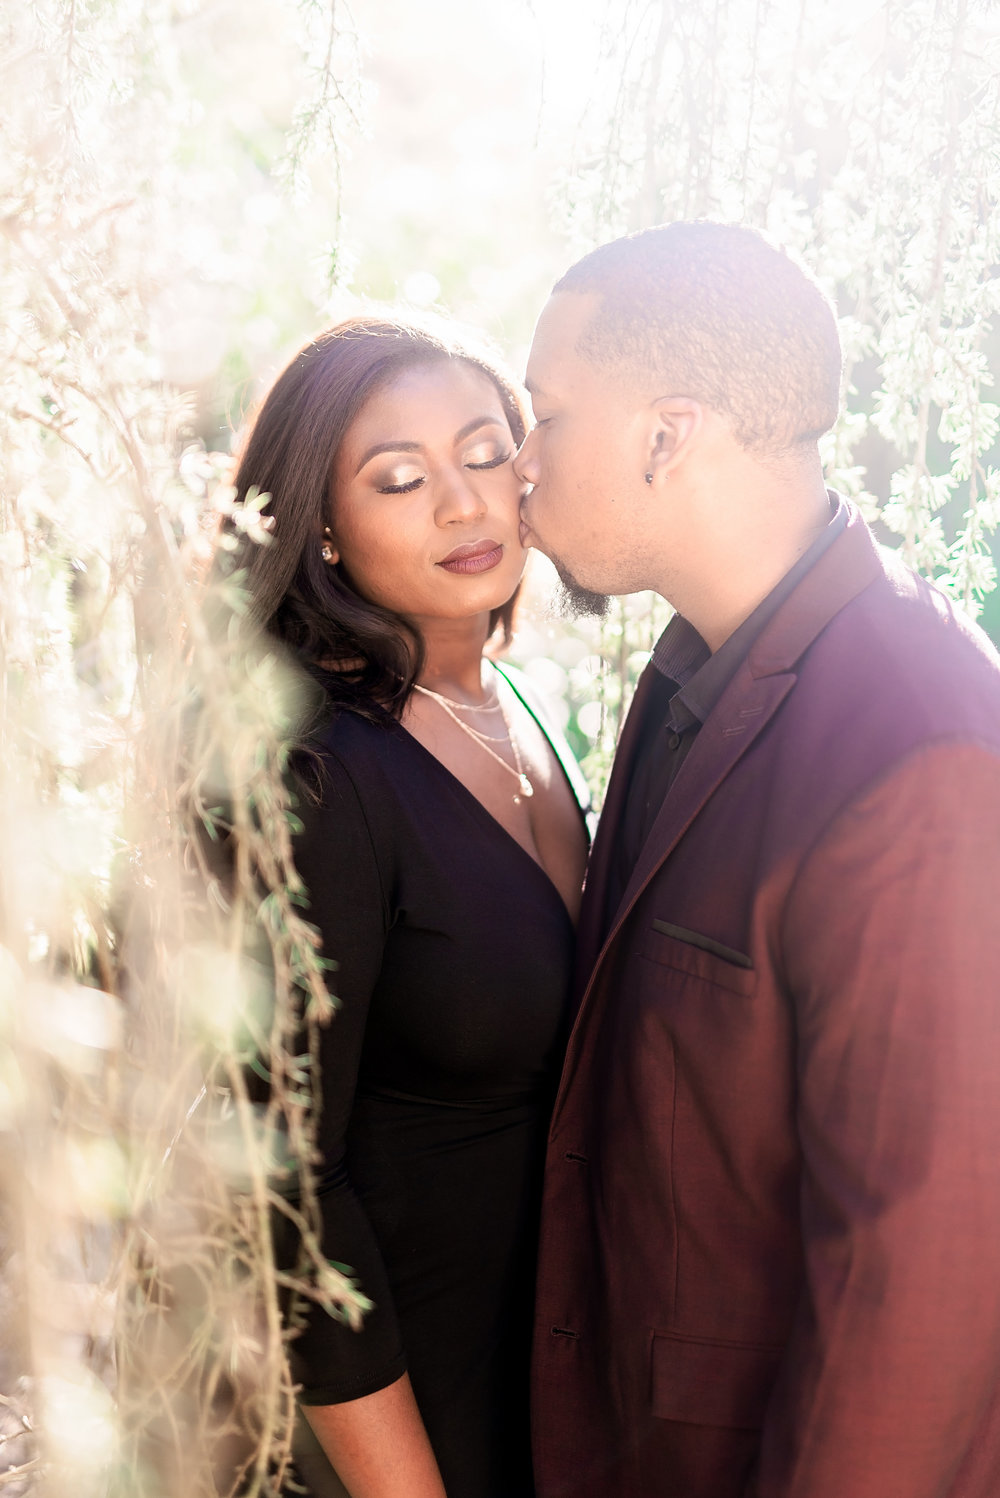 Kevin-Adriana-Pharris-Photography-Engagement-Photoshoot-2.jpg